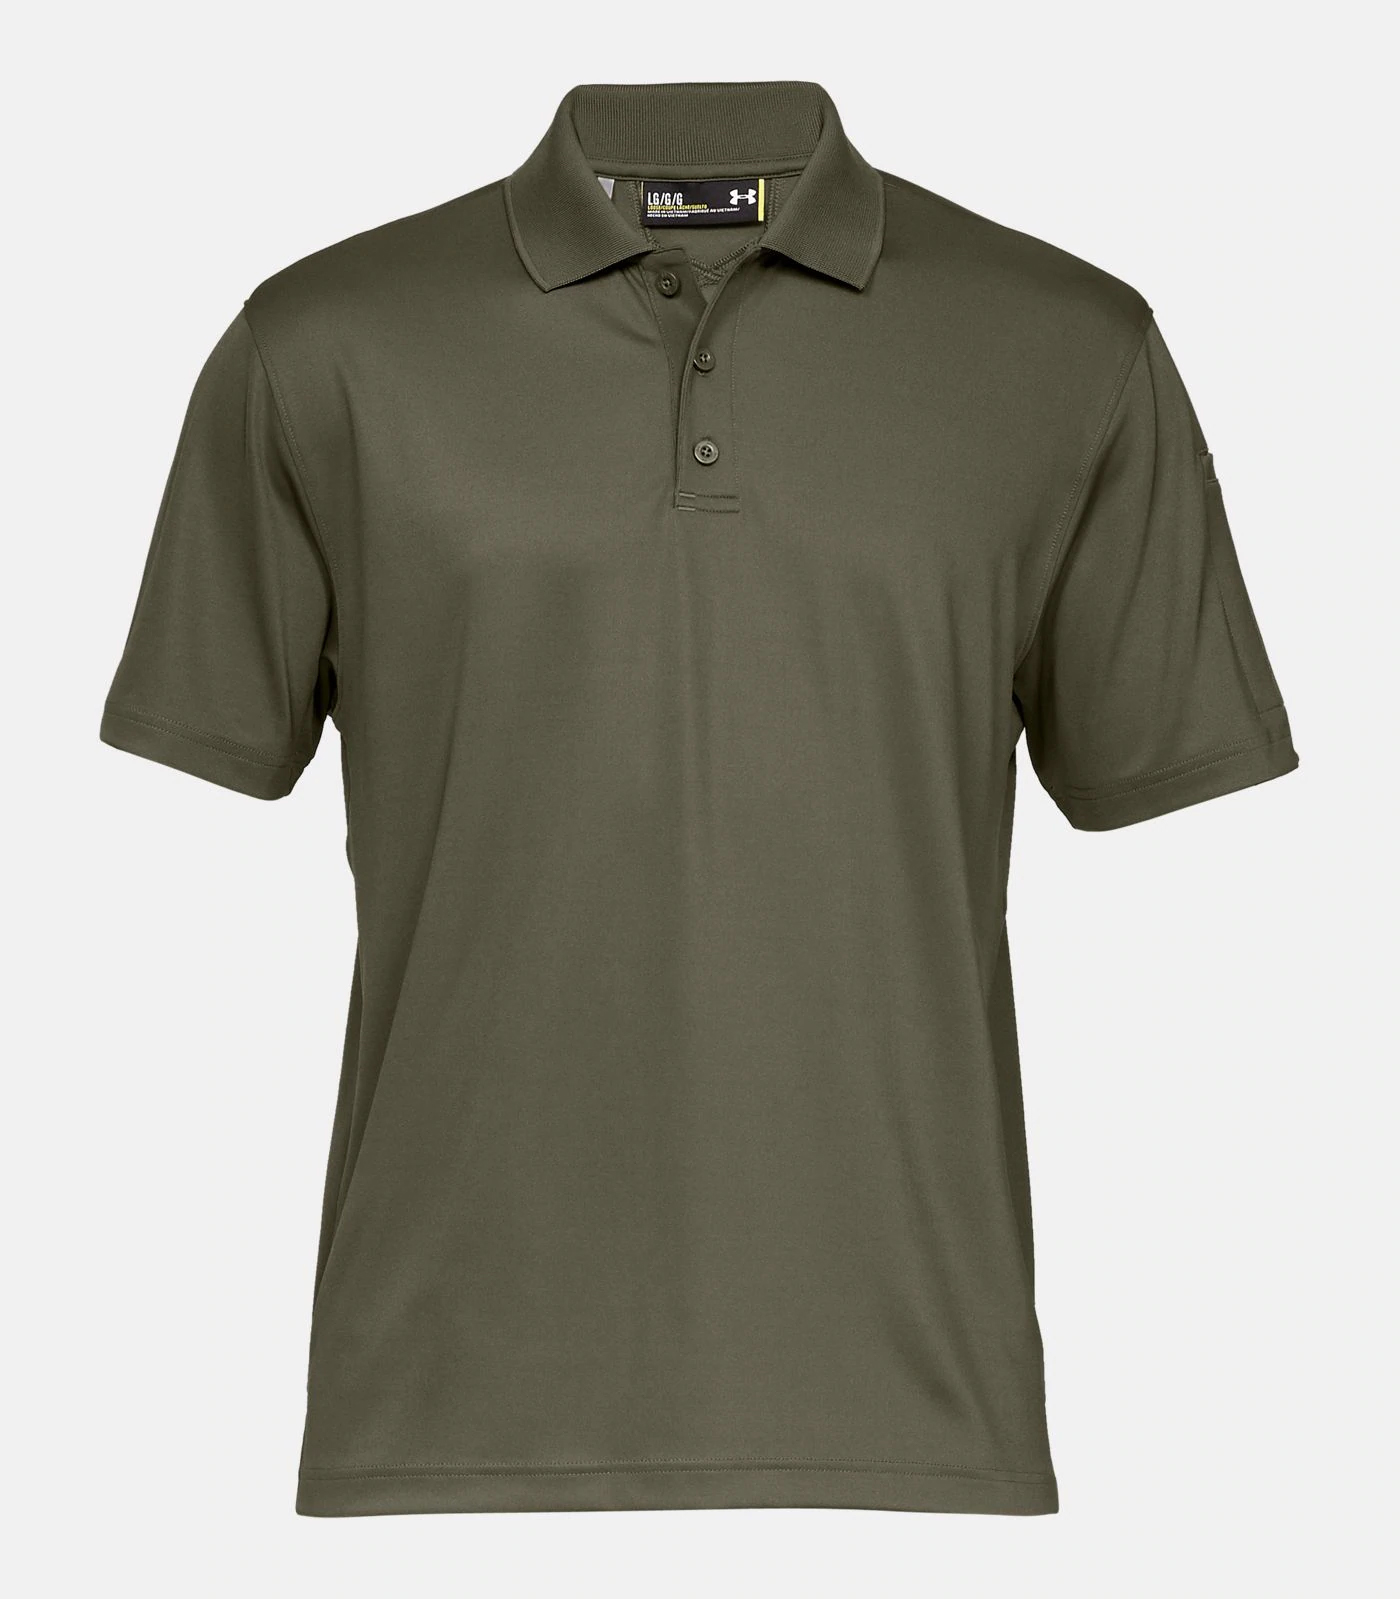 MENS_POLO_TacPerformance-SS_UAR1279759390_05